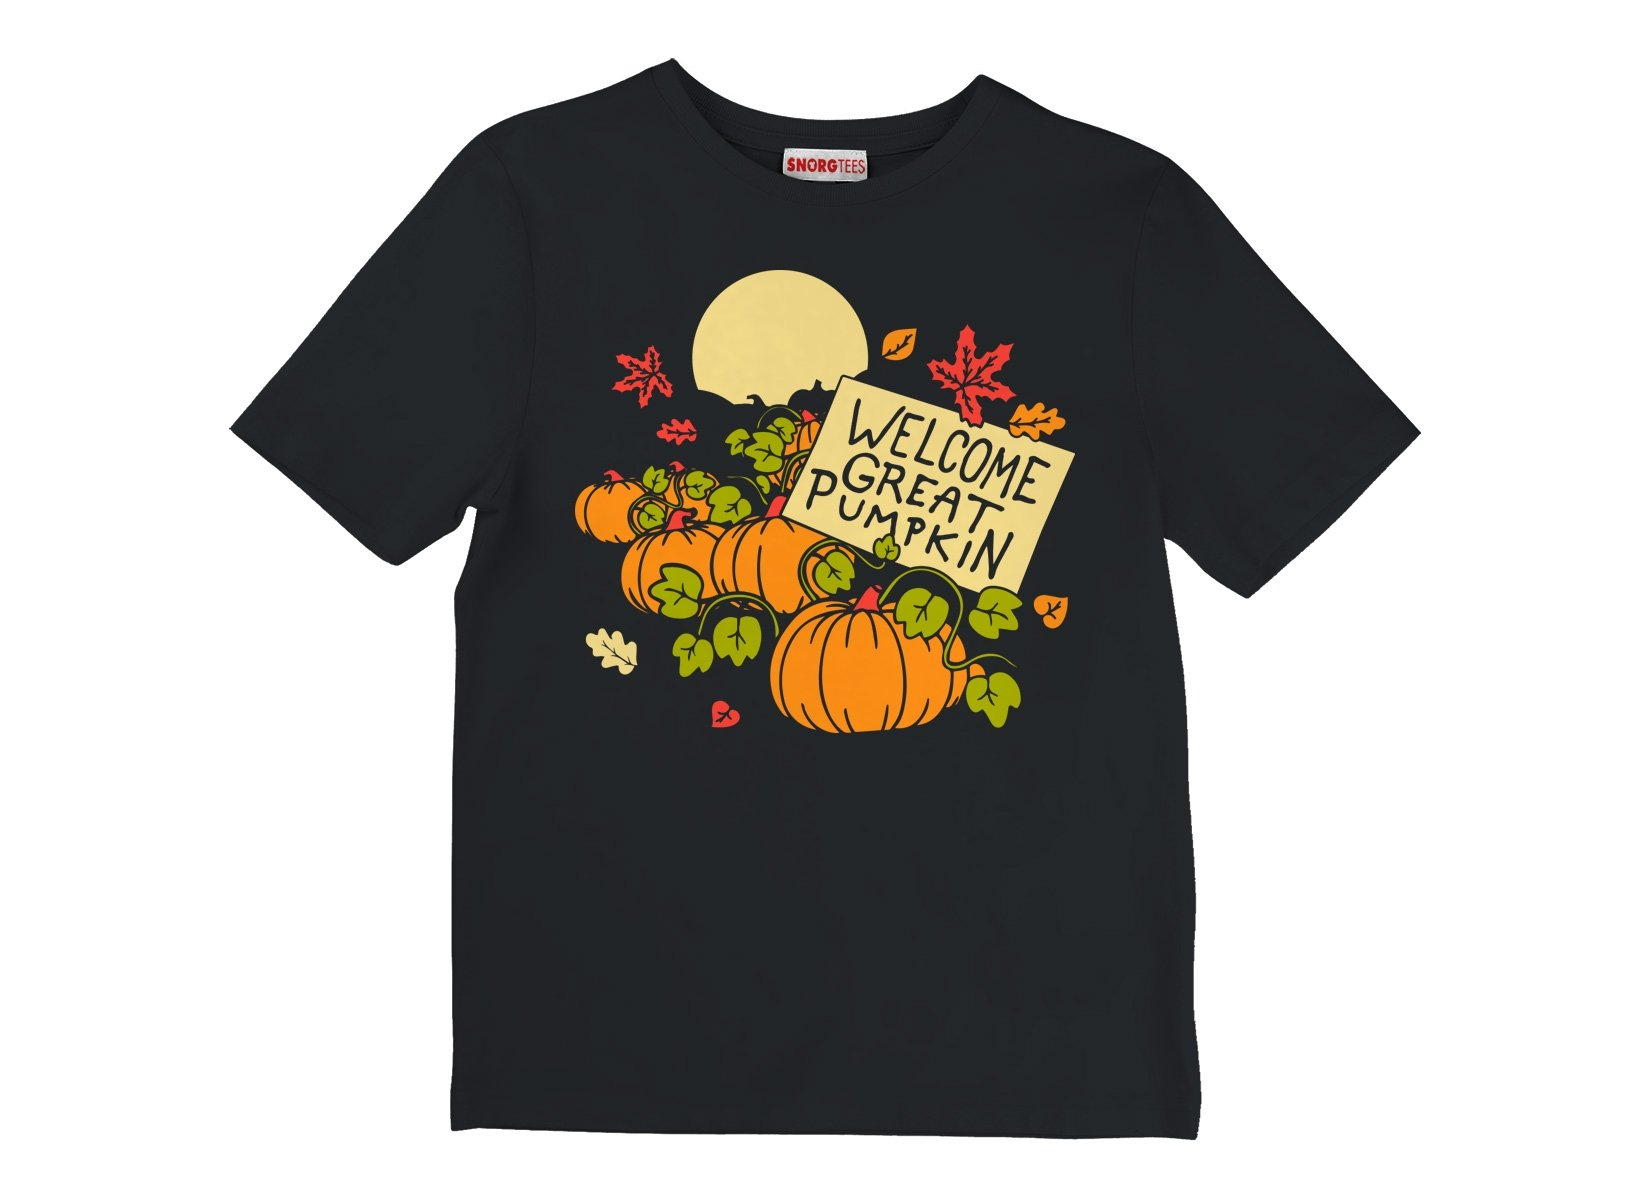 Welcome Great Pumpkin on Kids T-Shirt